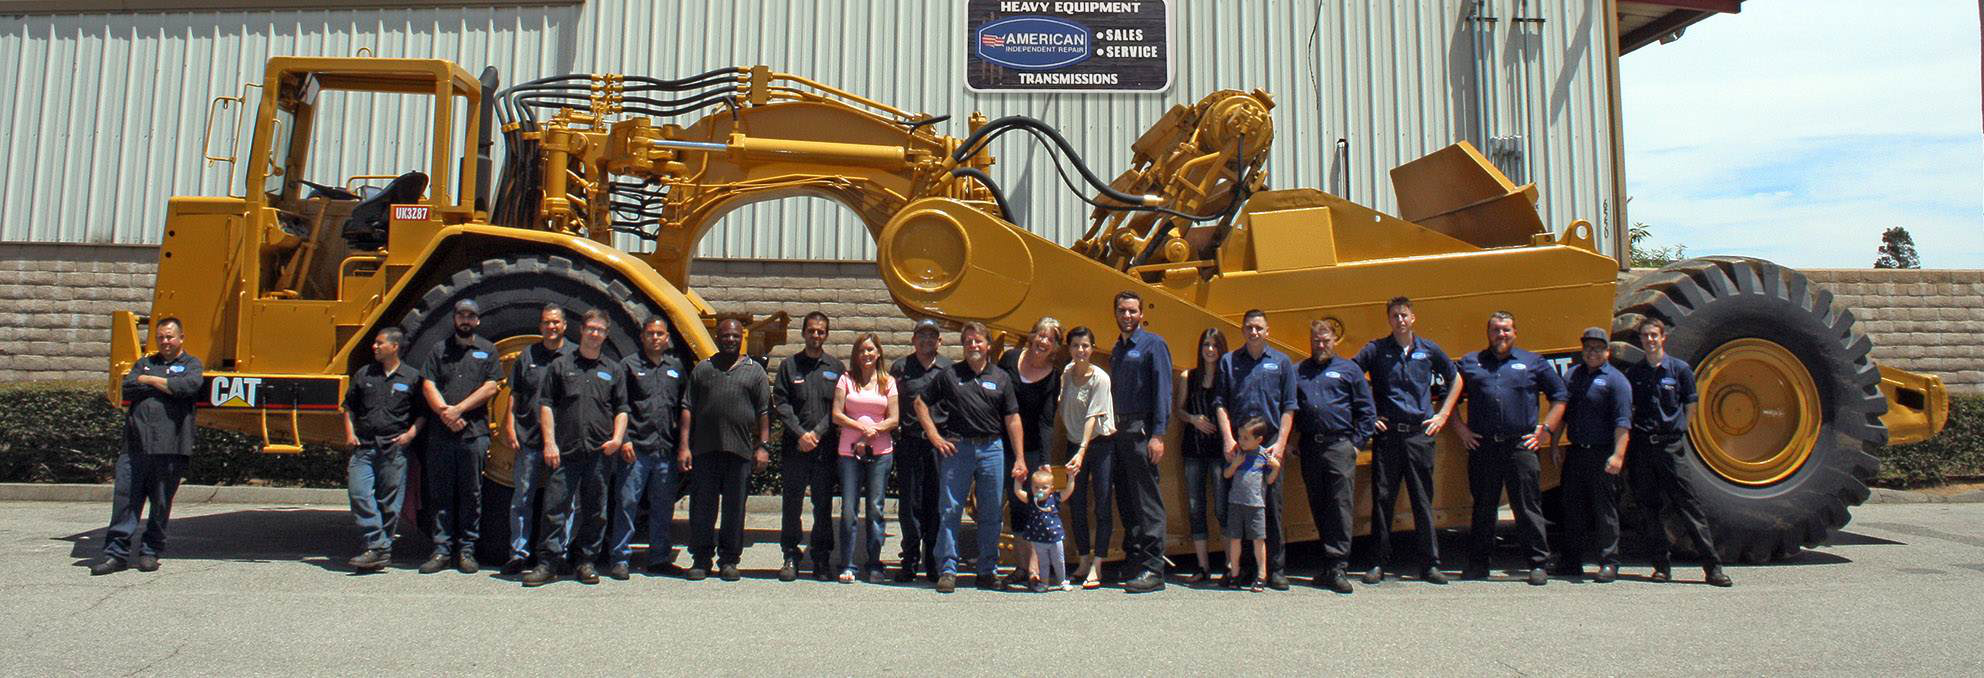 American Independent, Inc. crew standing in front of CAT charlotte nc dump trucks